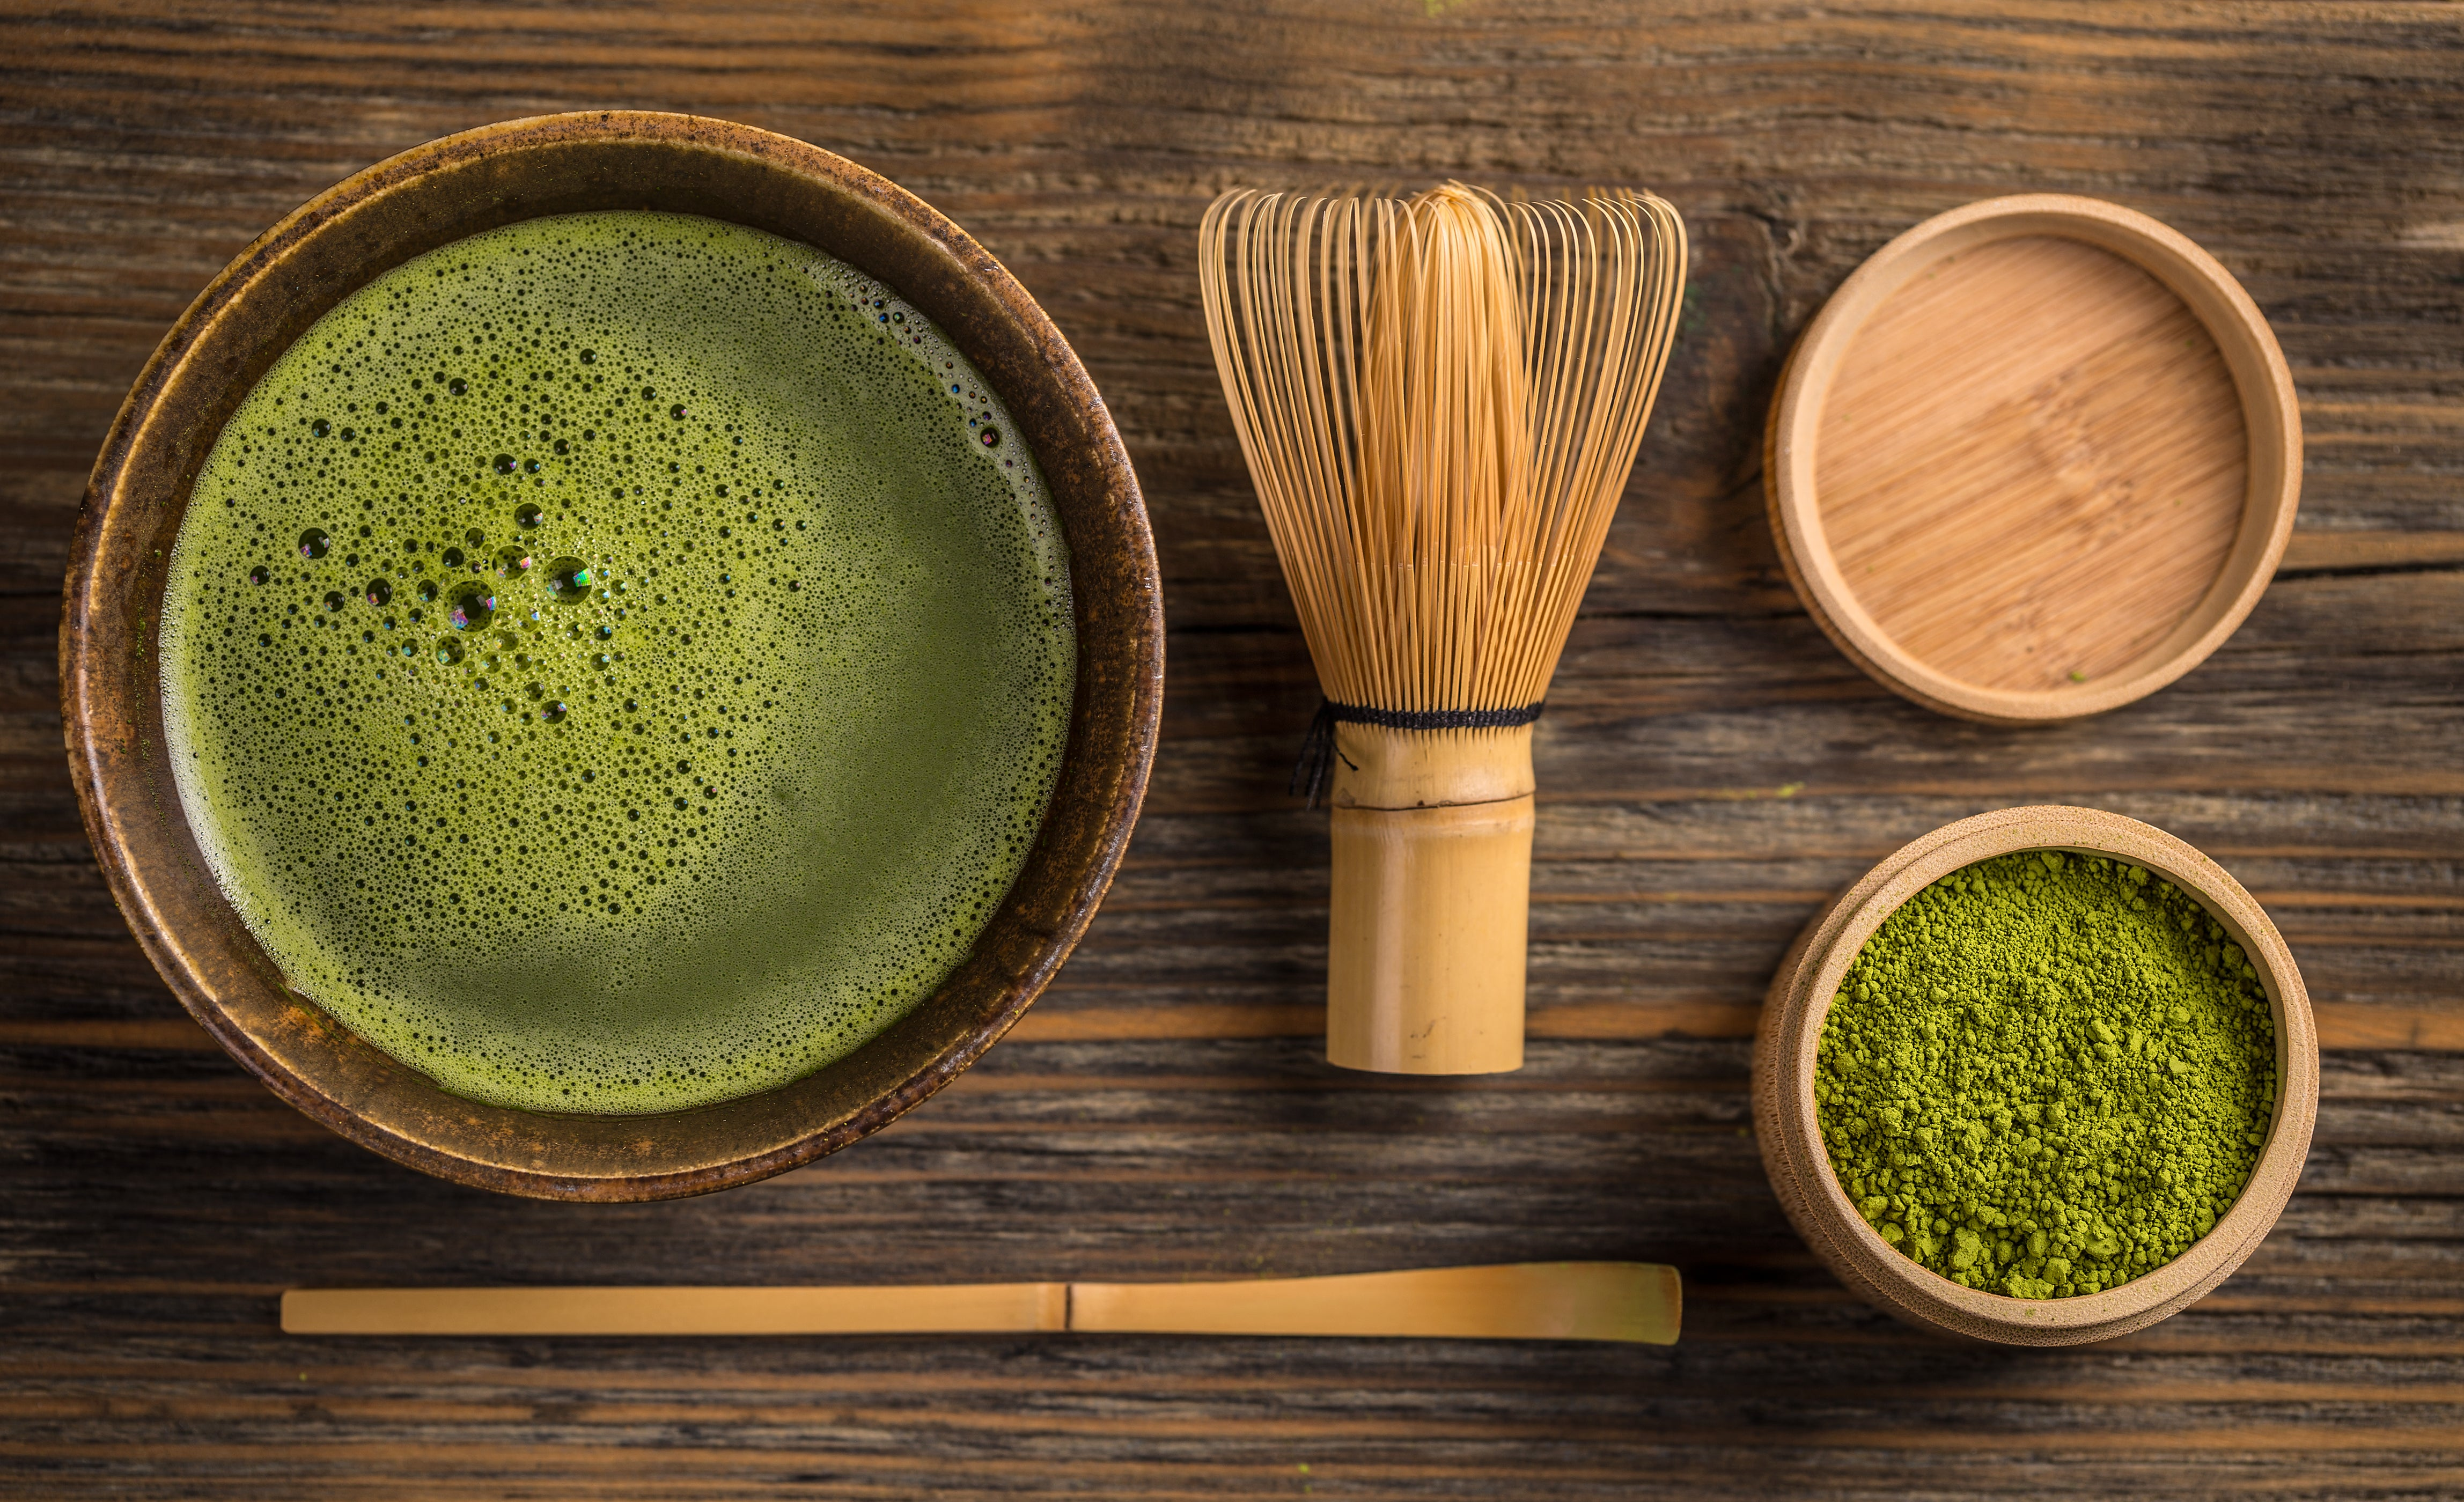 Ceremonial Grade Matcha Green Tea and Where Matcha Comes From